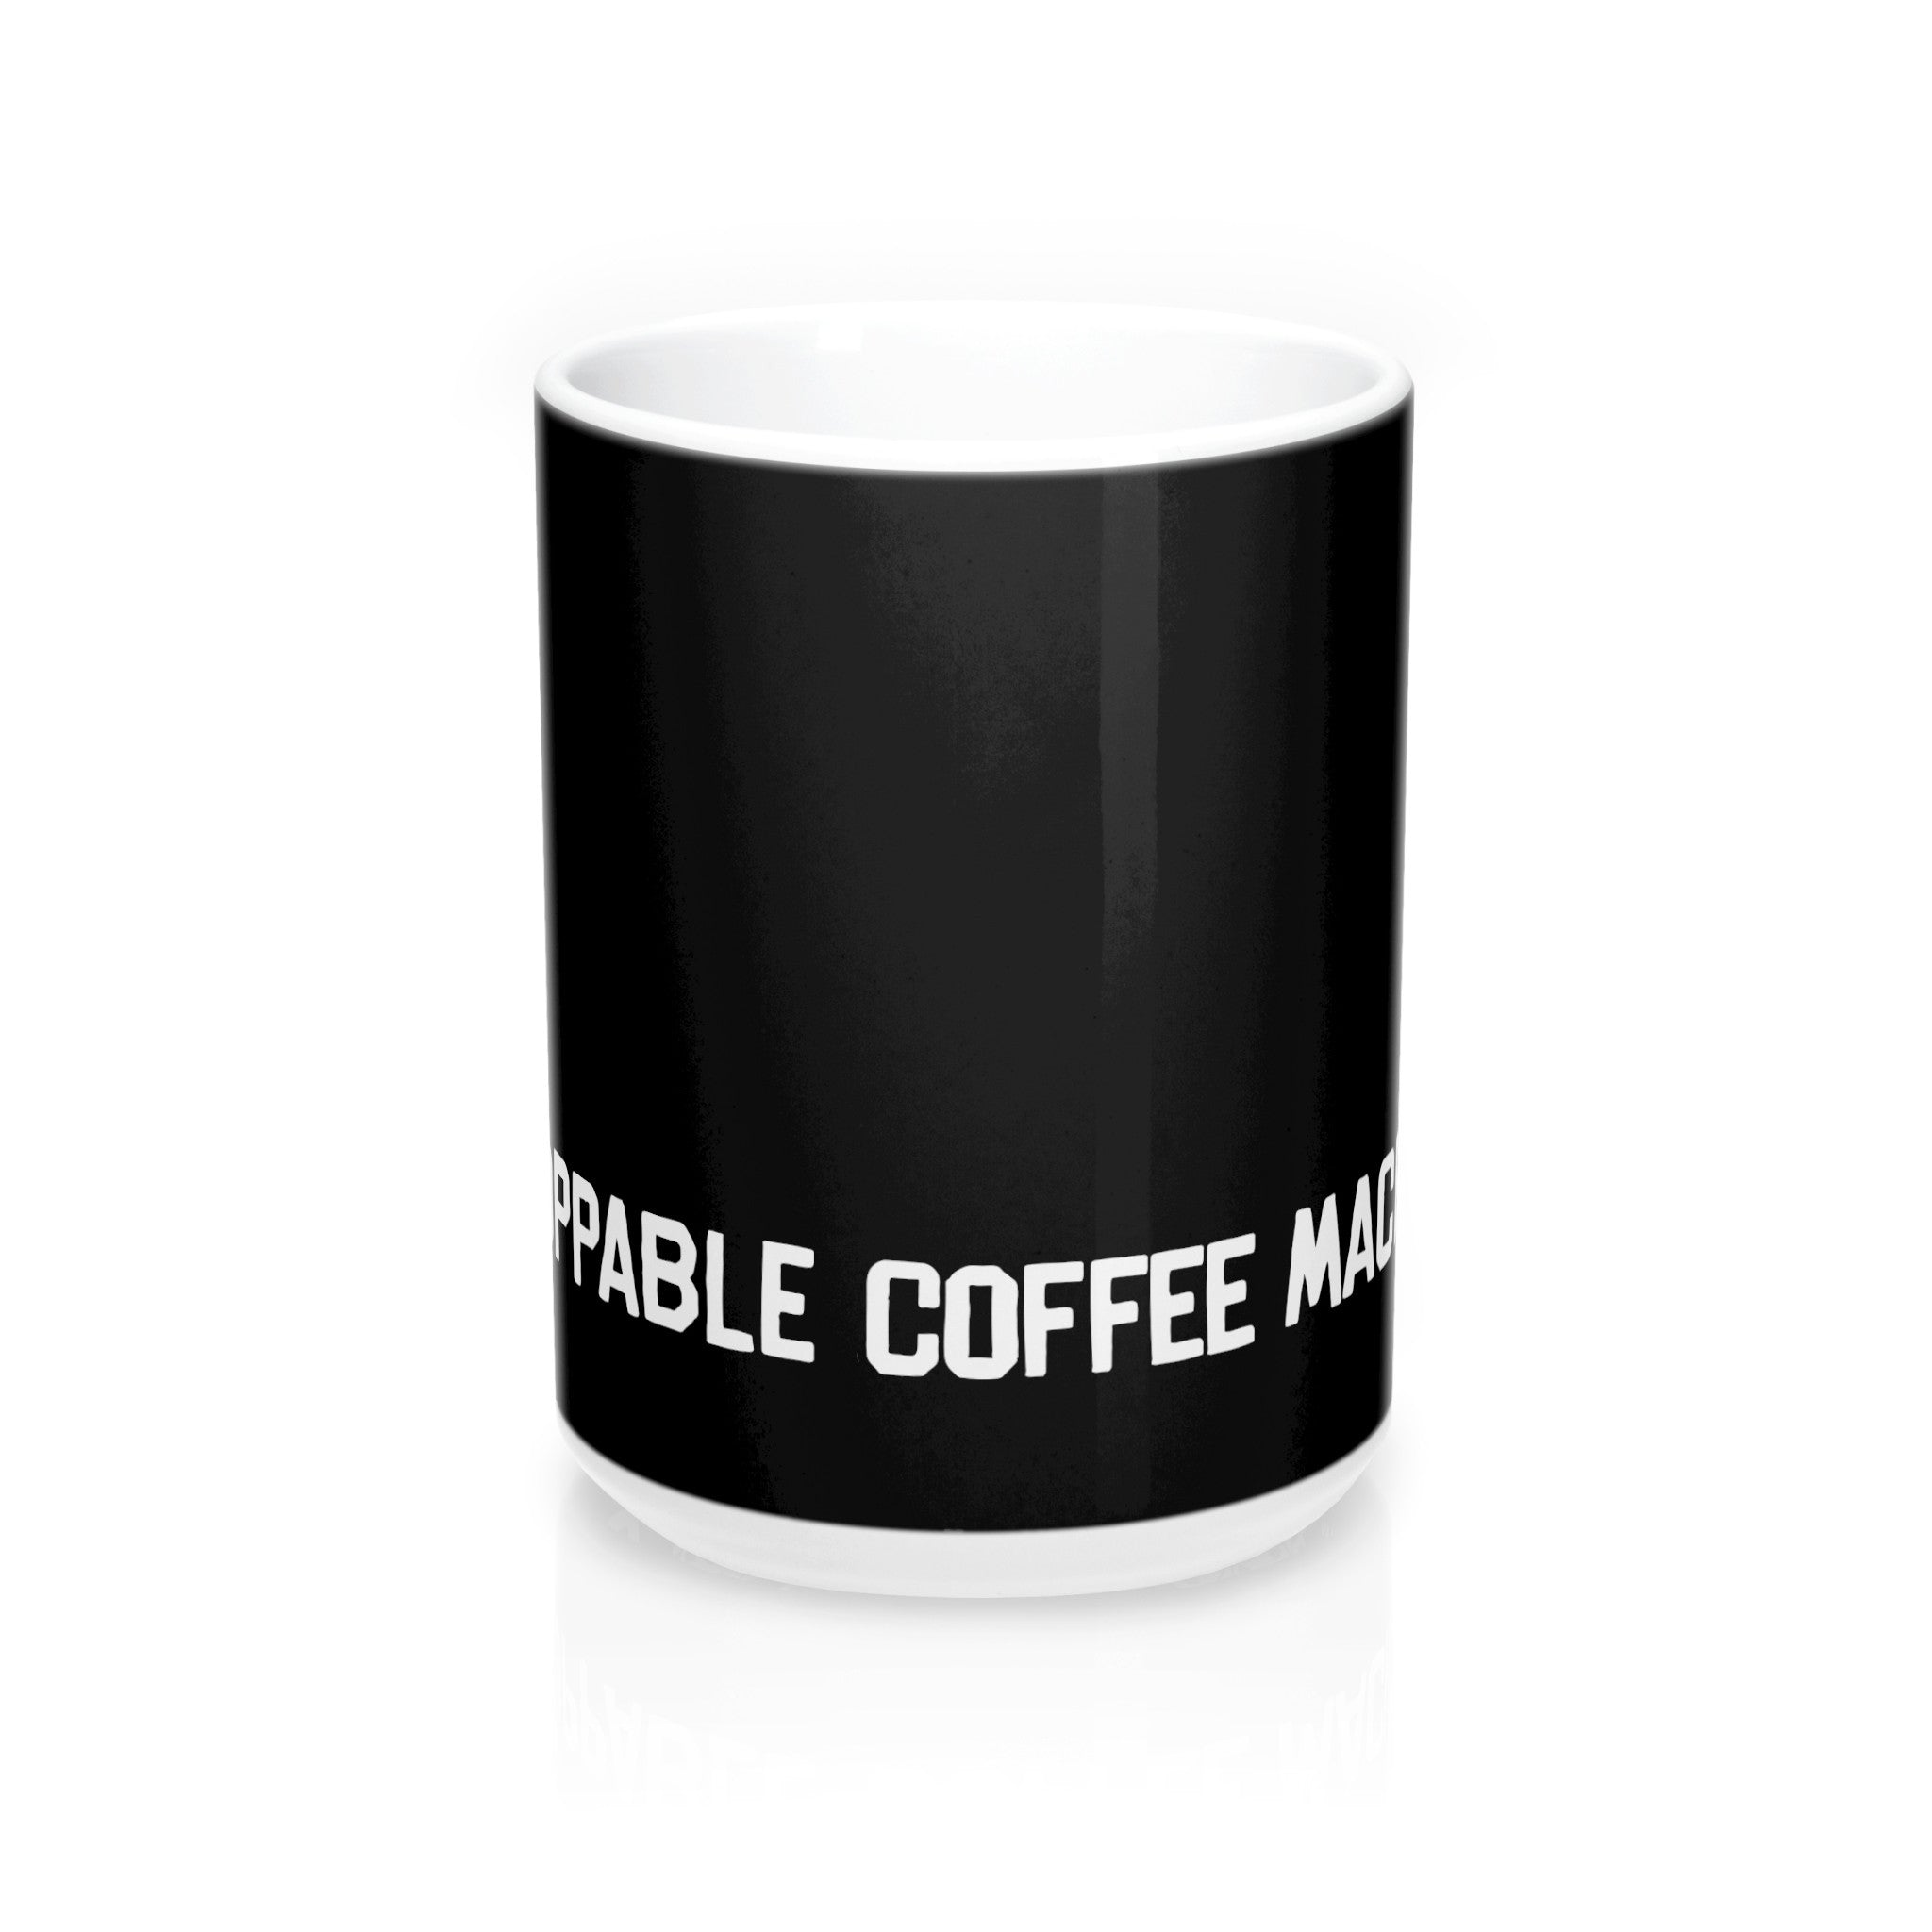 Unstoppable Coffee Machine Wrap Mug, Black